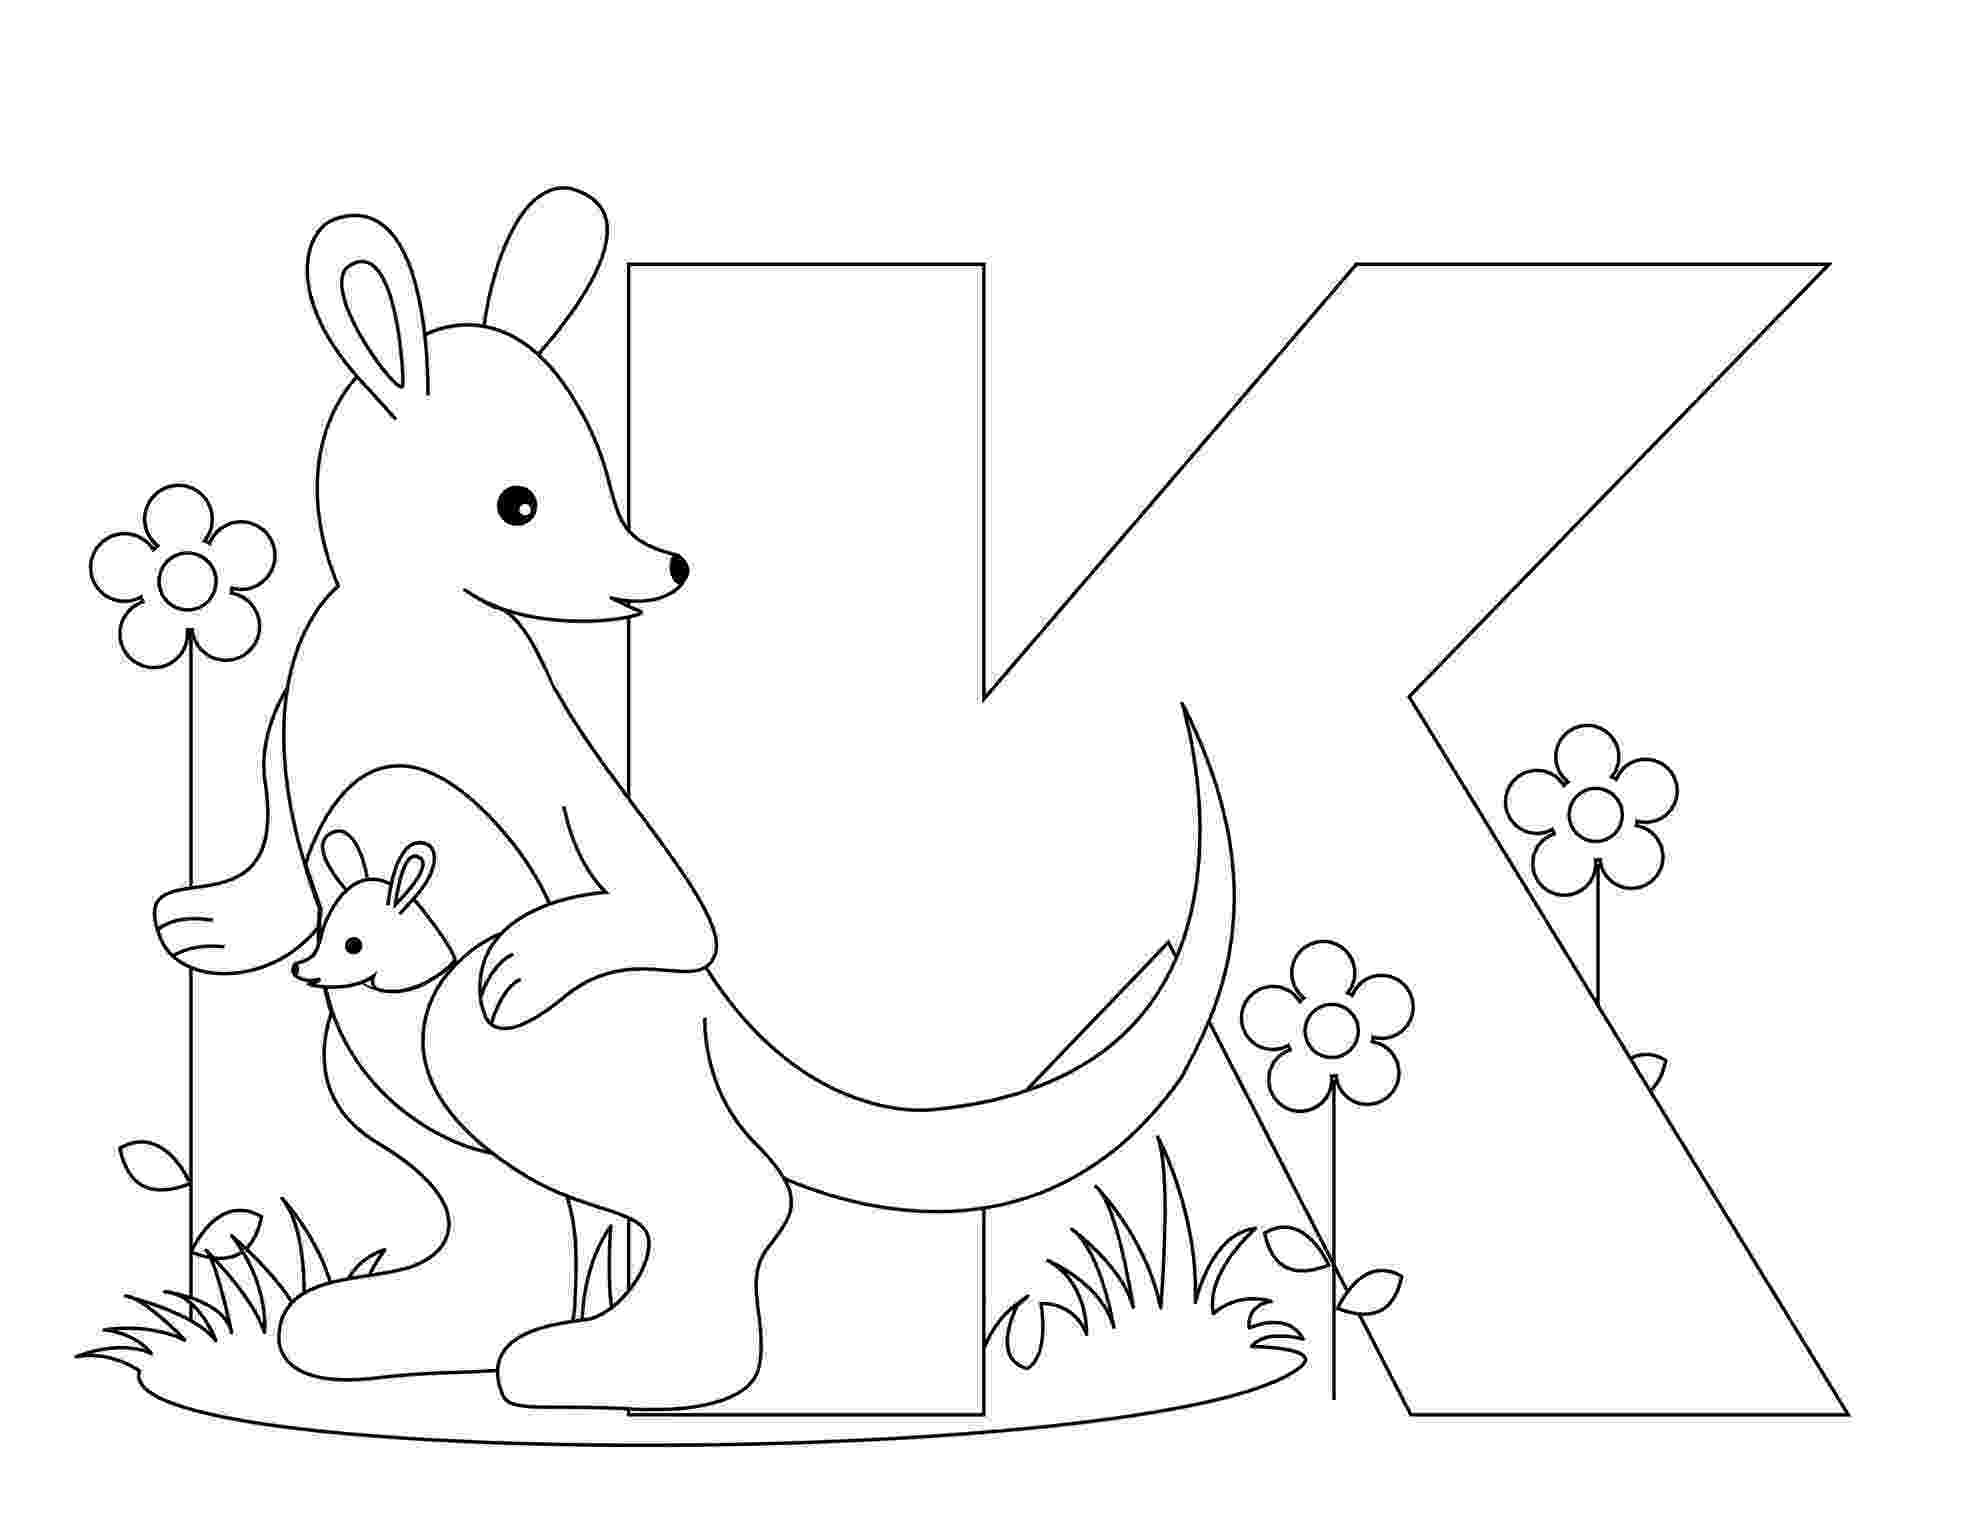 printable coloring alphabet letters free printable alphabet coloring pages for kids best coloring printable alphabet letters 1 1